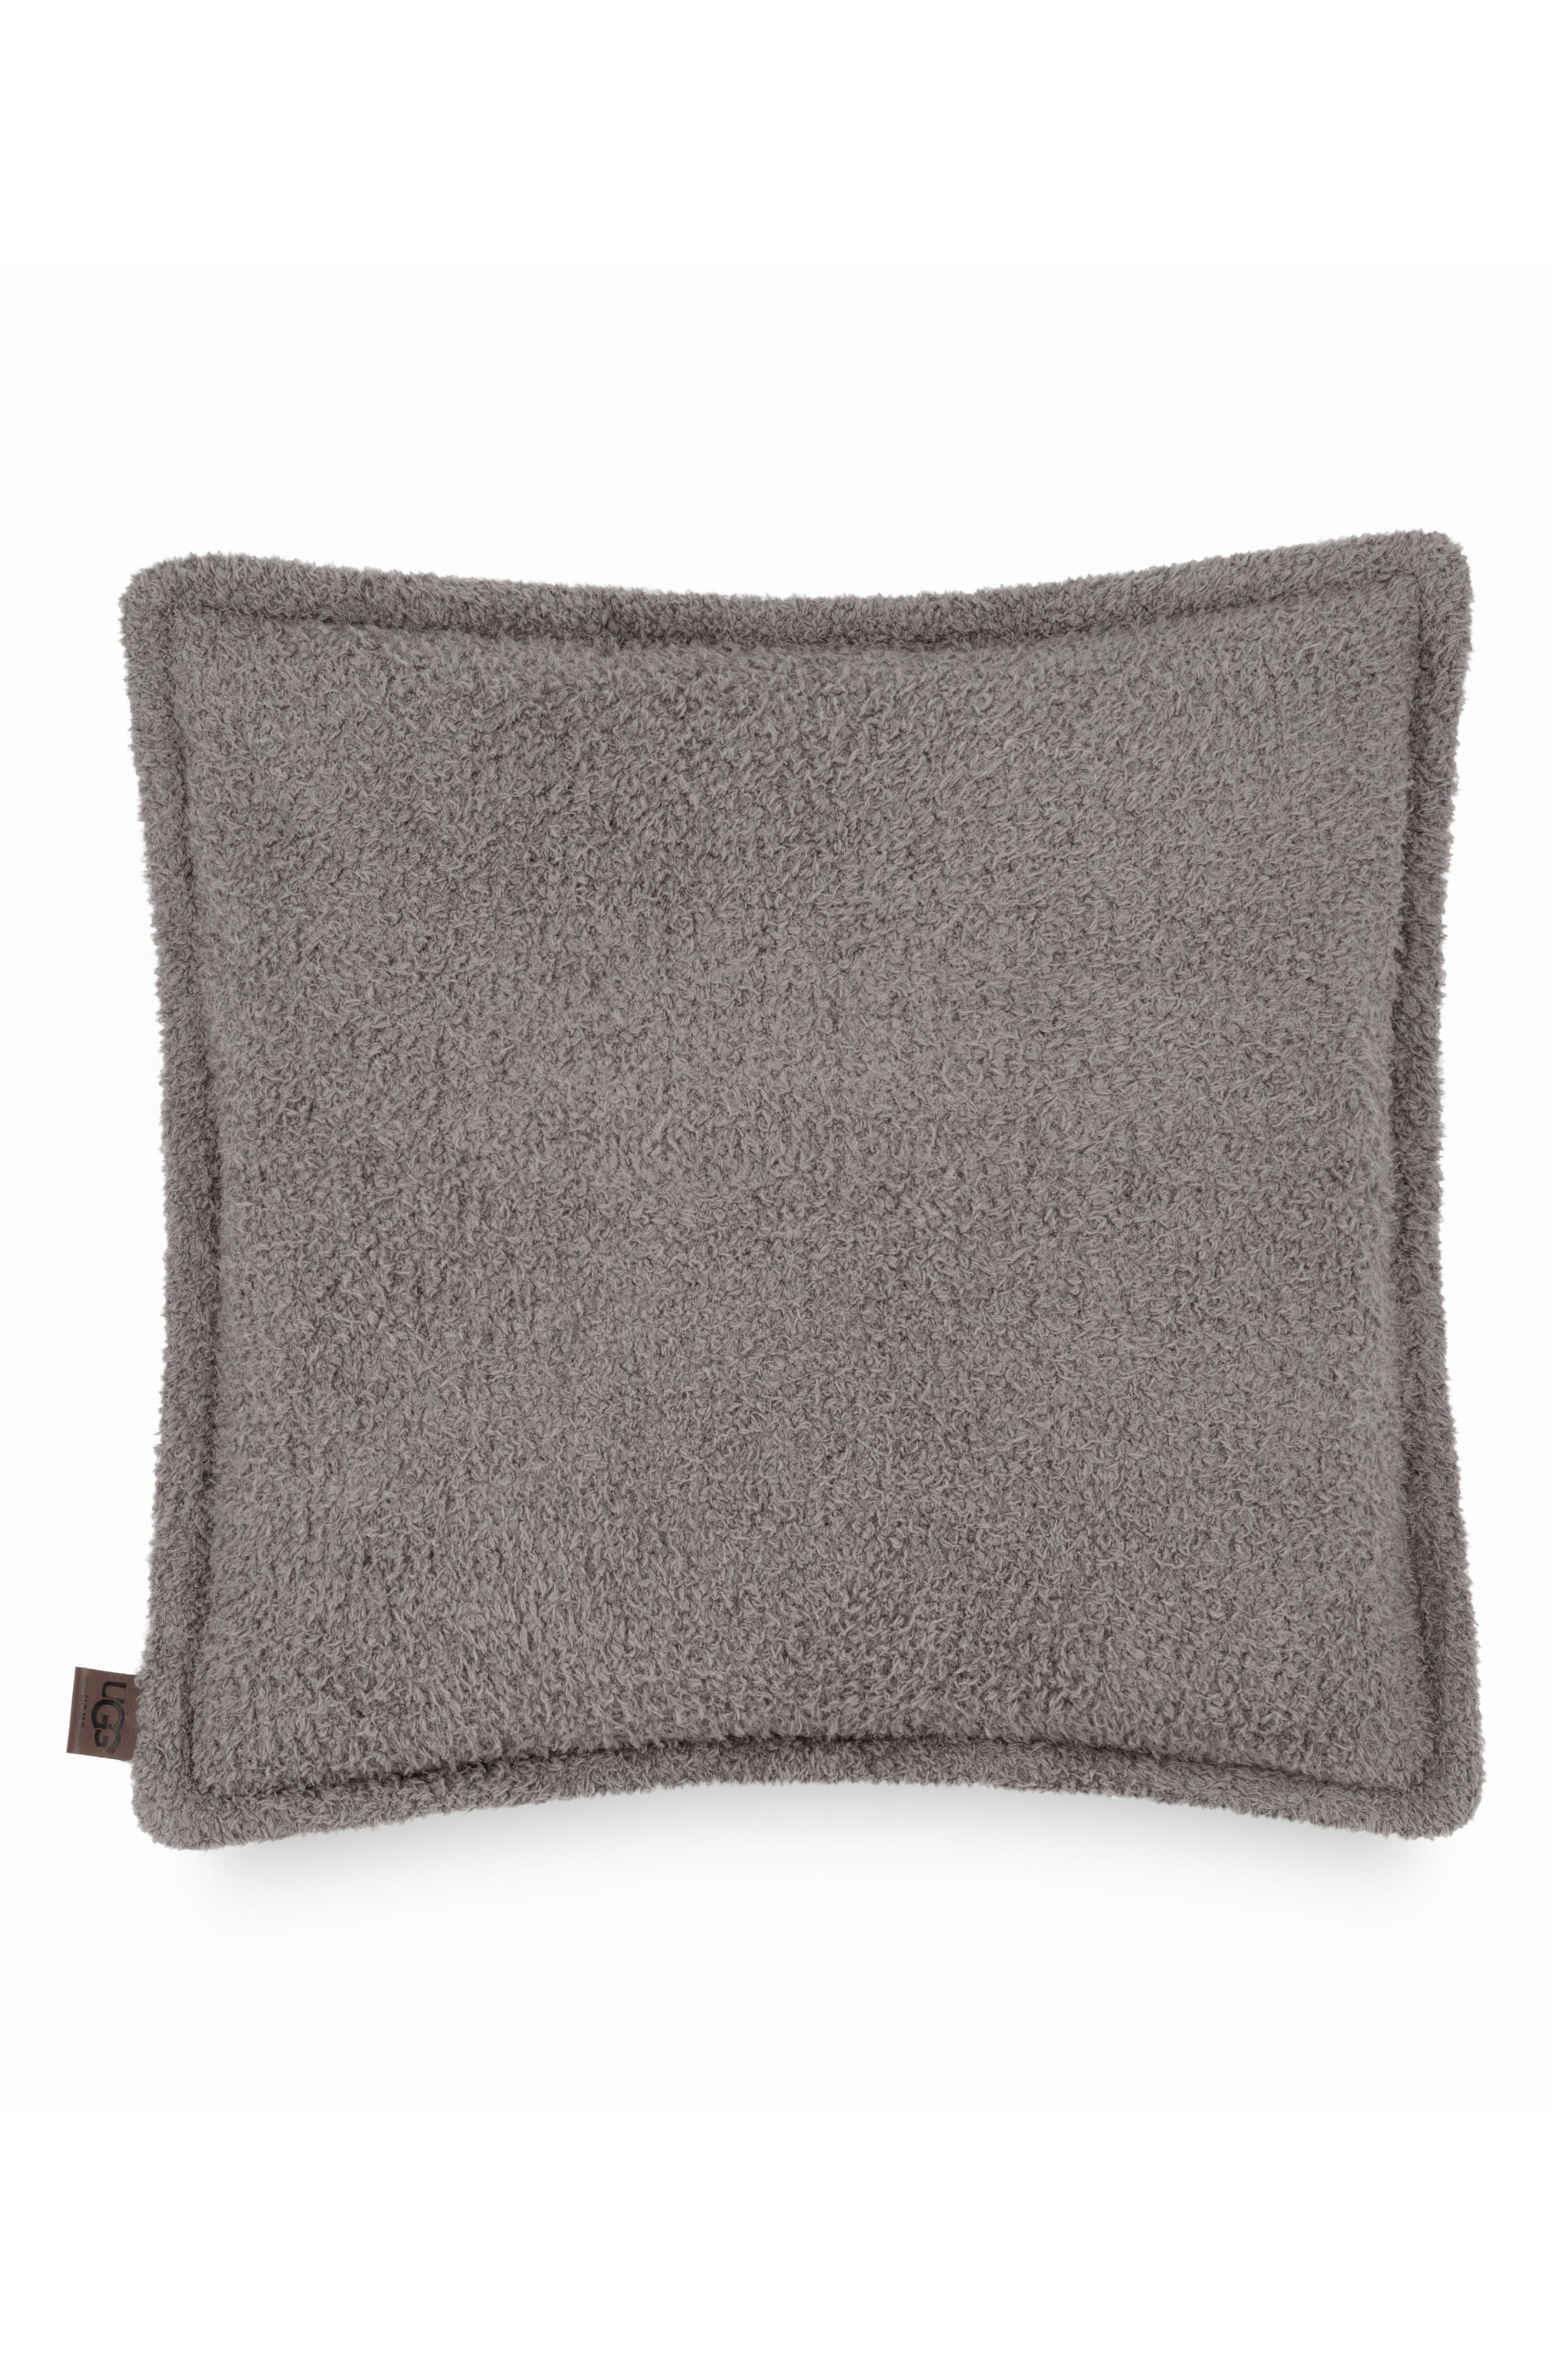 Ana Fuzzy Pillow,                         Main,                         color, CHARCOAL